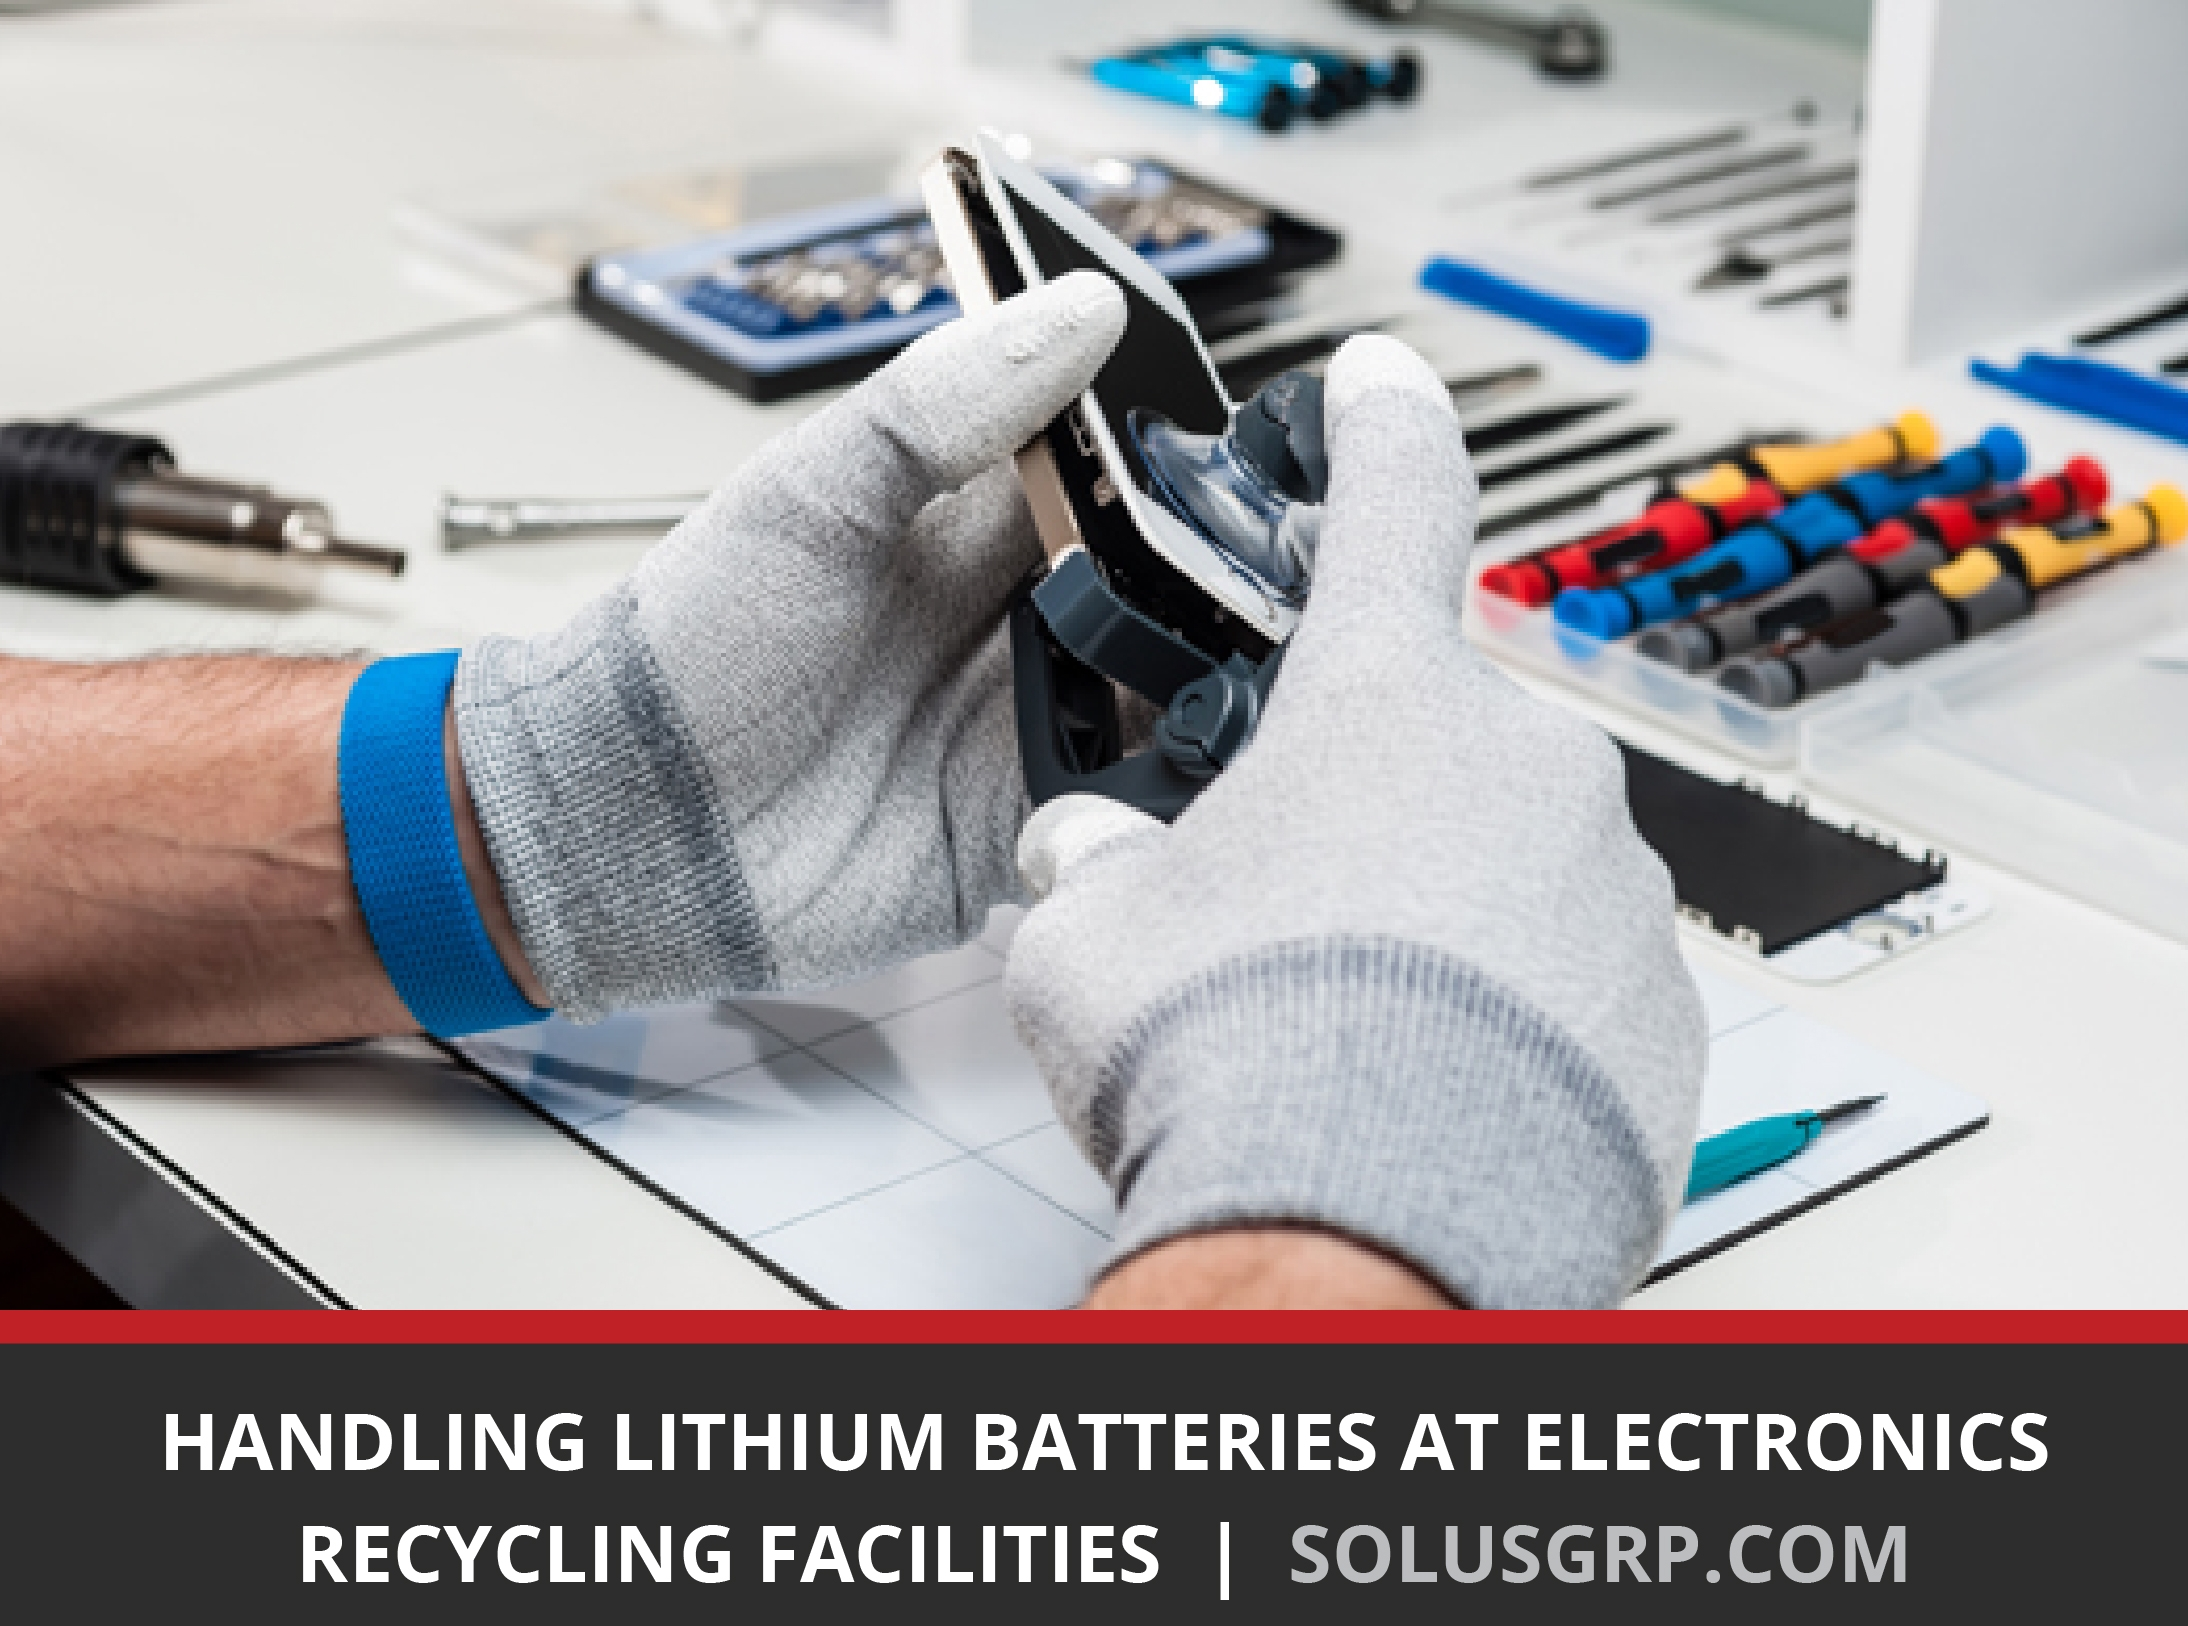 Handling Lithium Batteries at Electronics Recycling Facilities